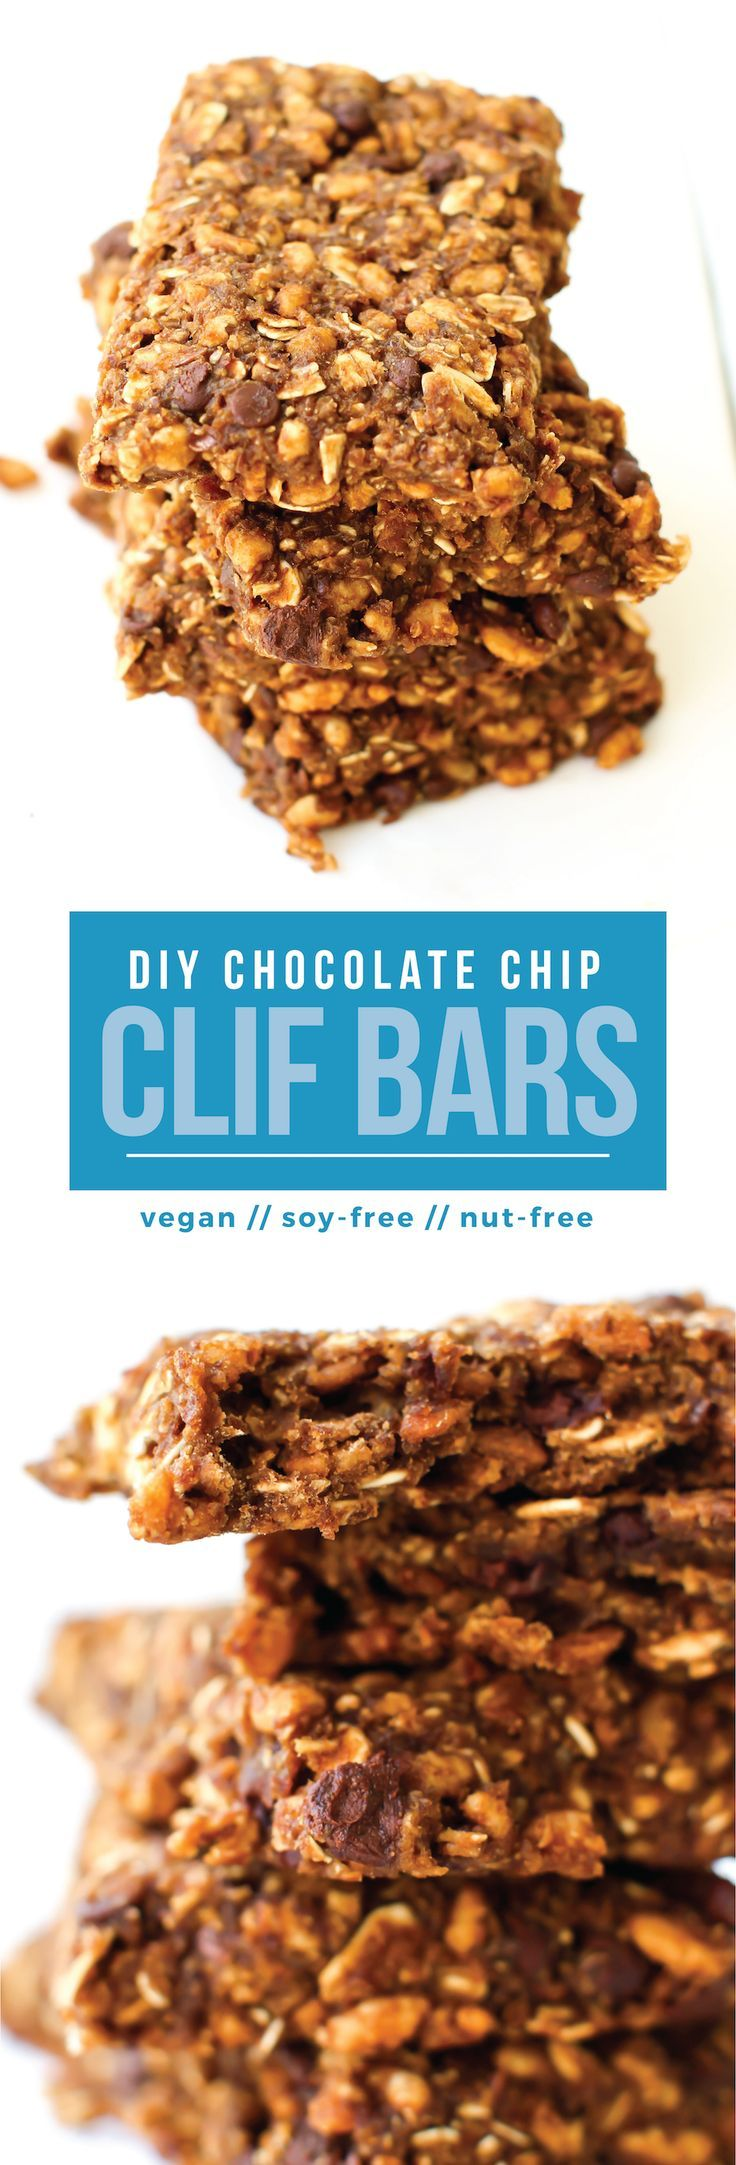 Make your own homemade Clif Bars! This nut-free, soy-free, vegan recipe makes for the perfect easy healthy snack. Much healthier and cheaper than storebought!